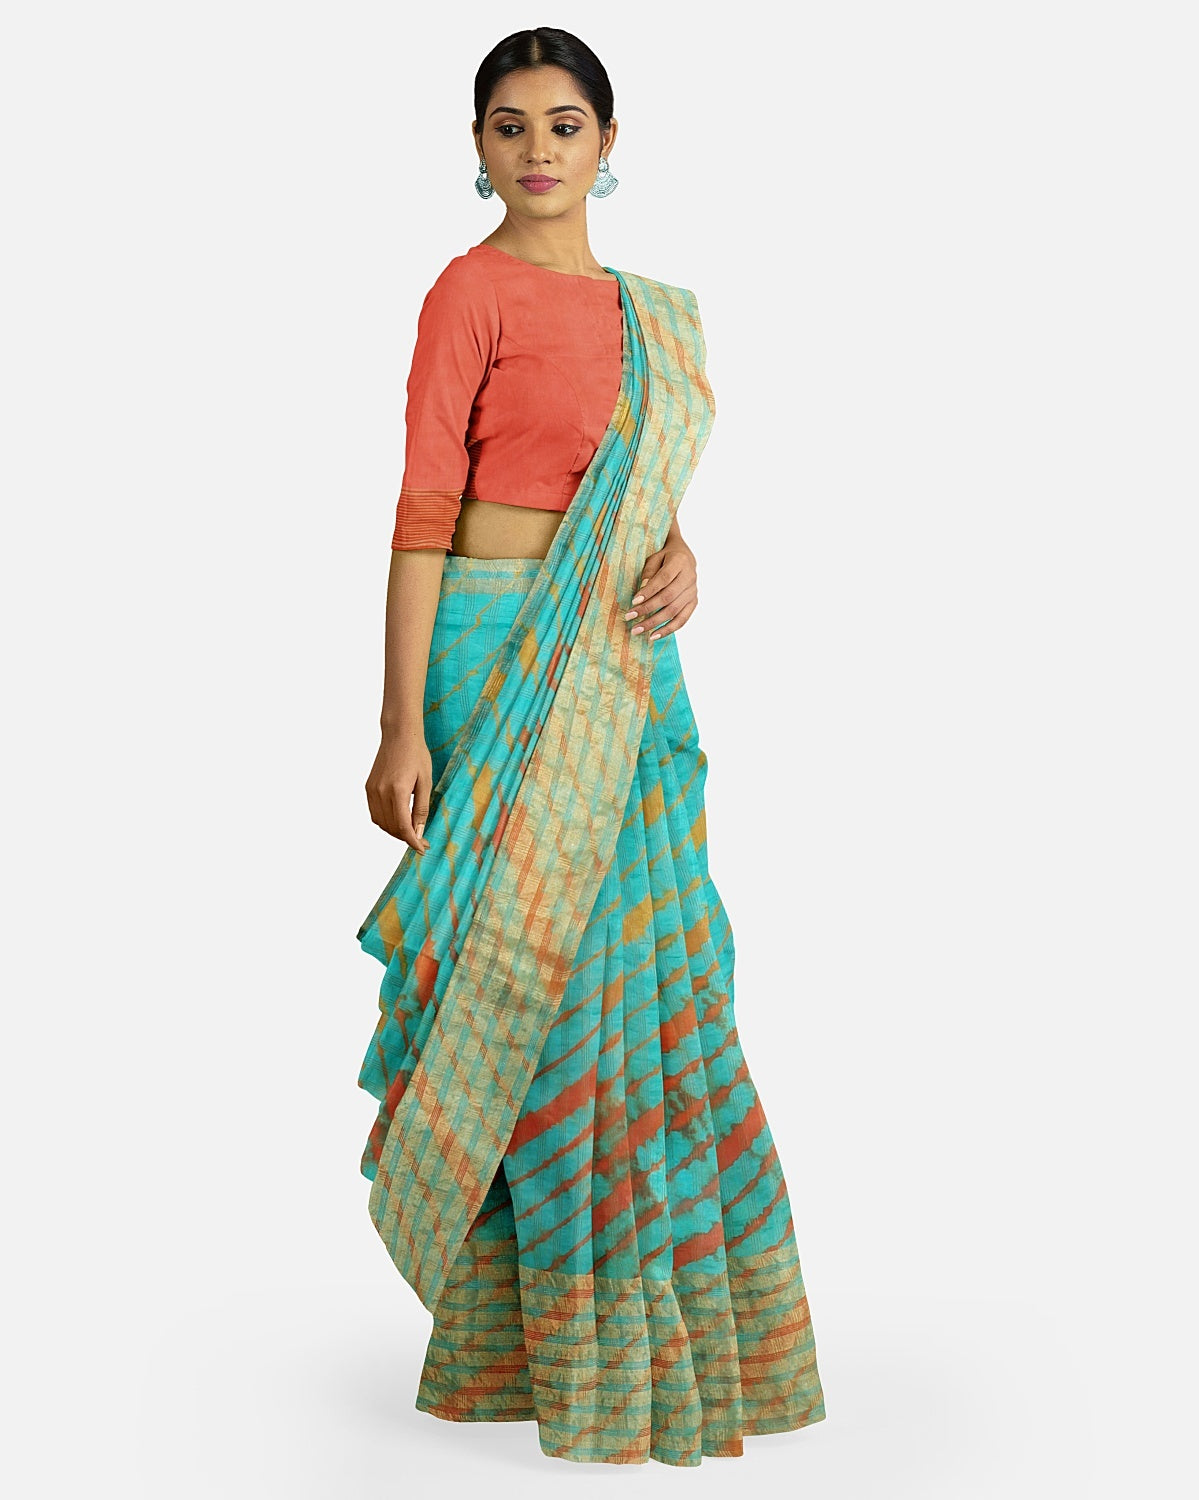 Turquoise Leheriya Light Silk Saree